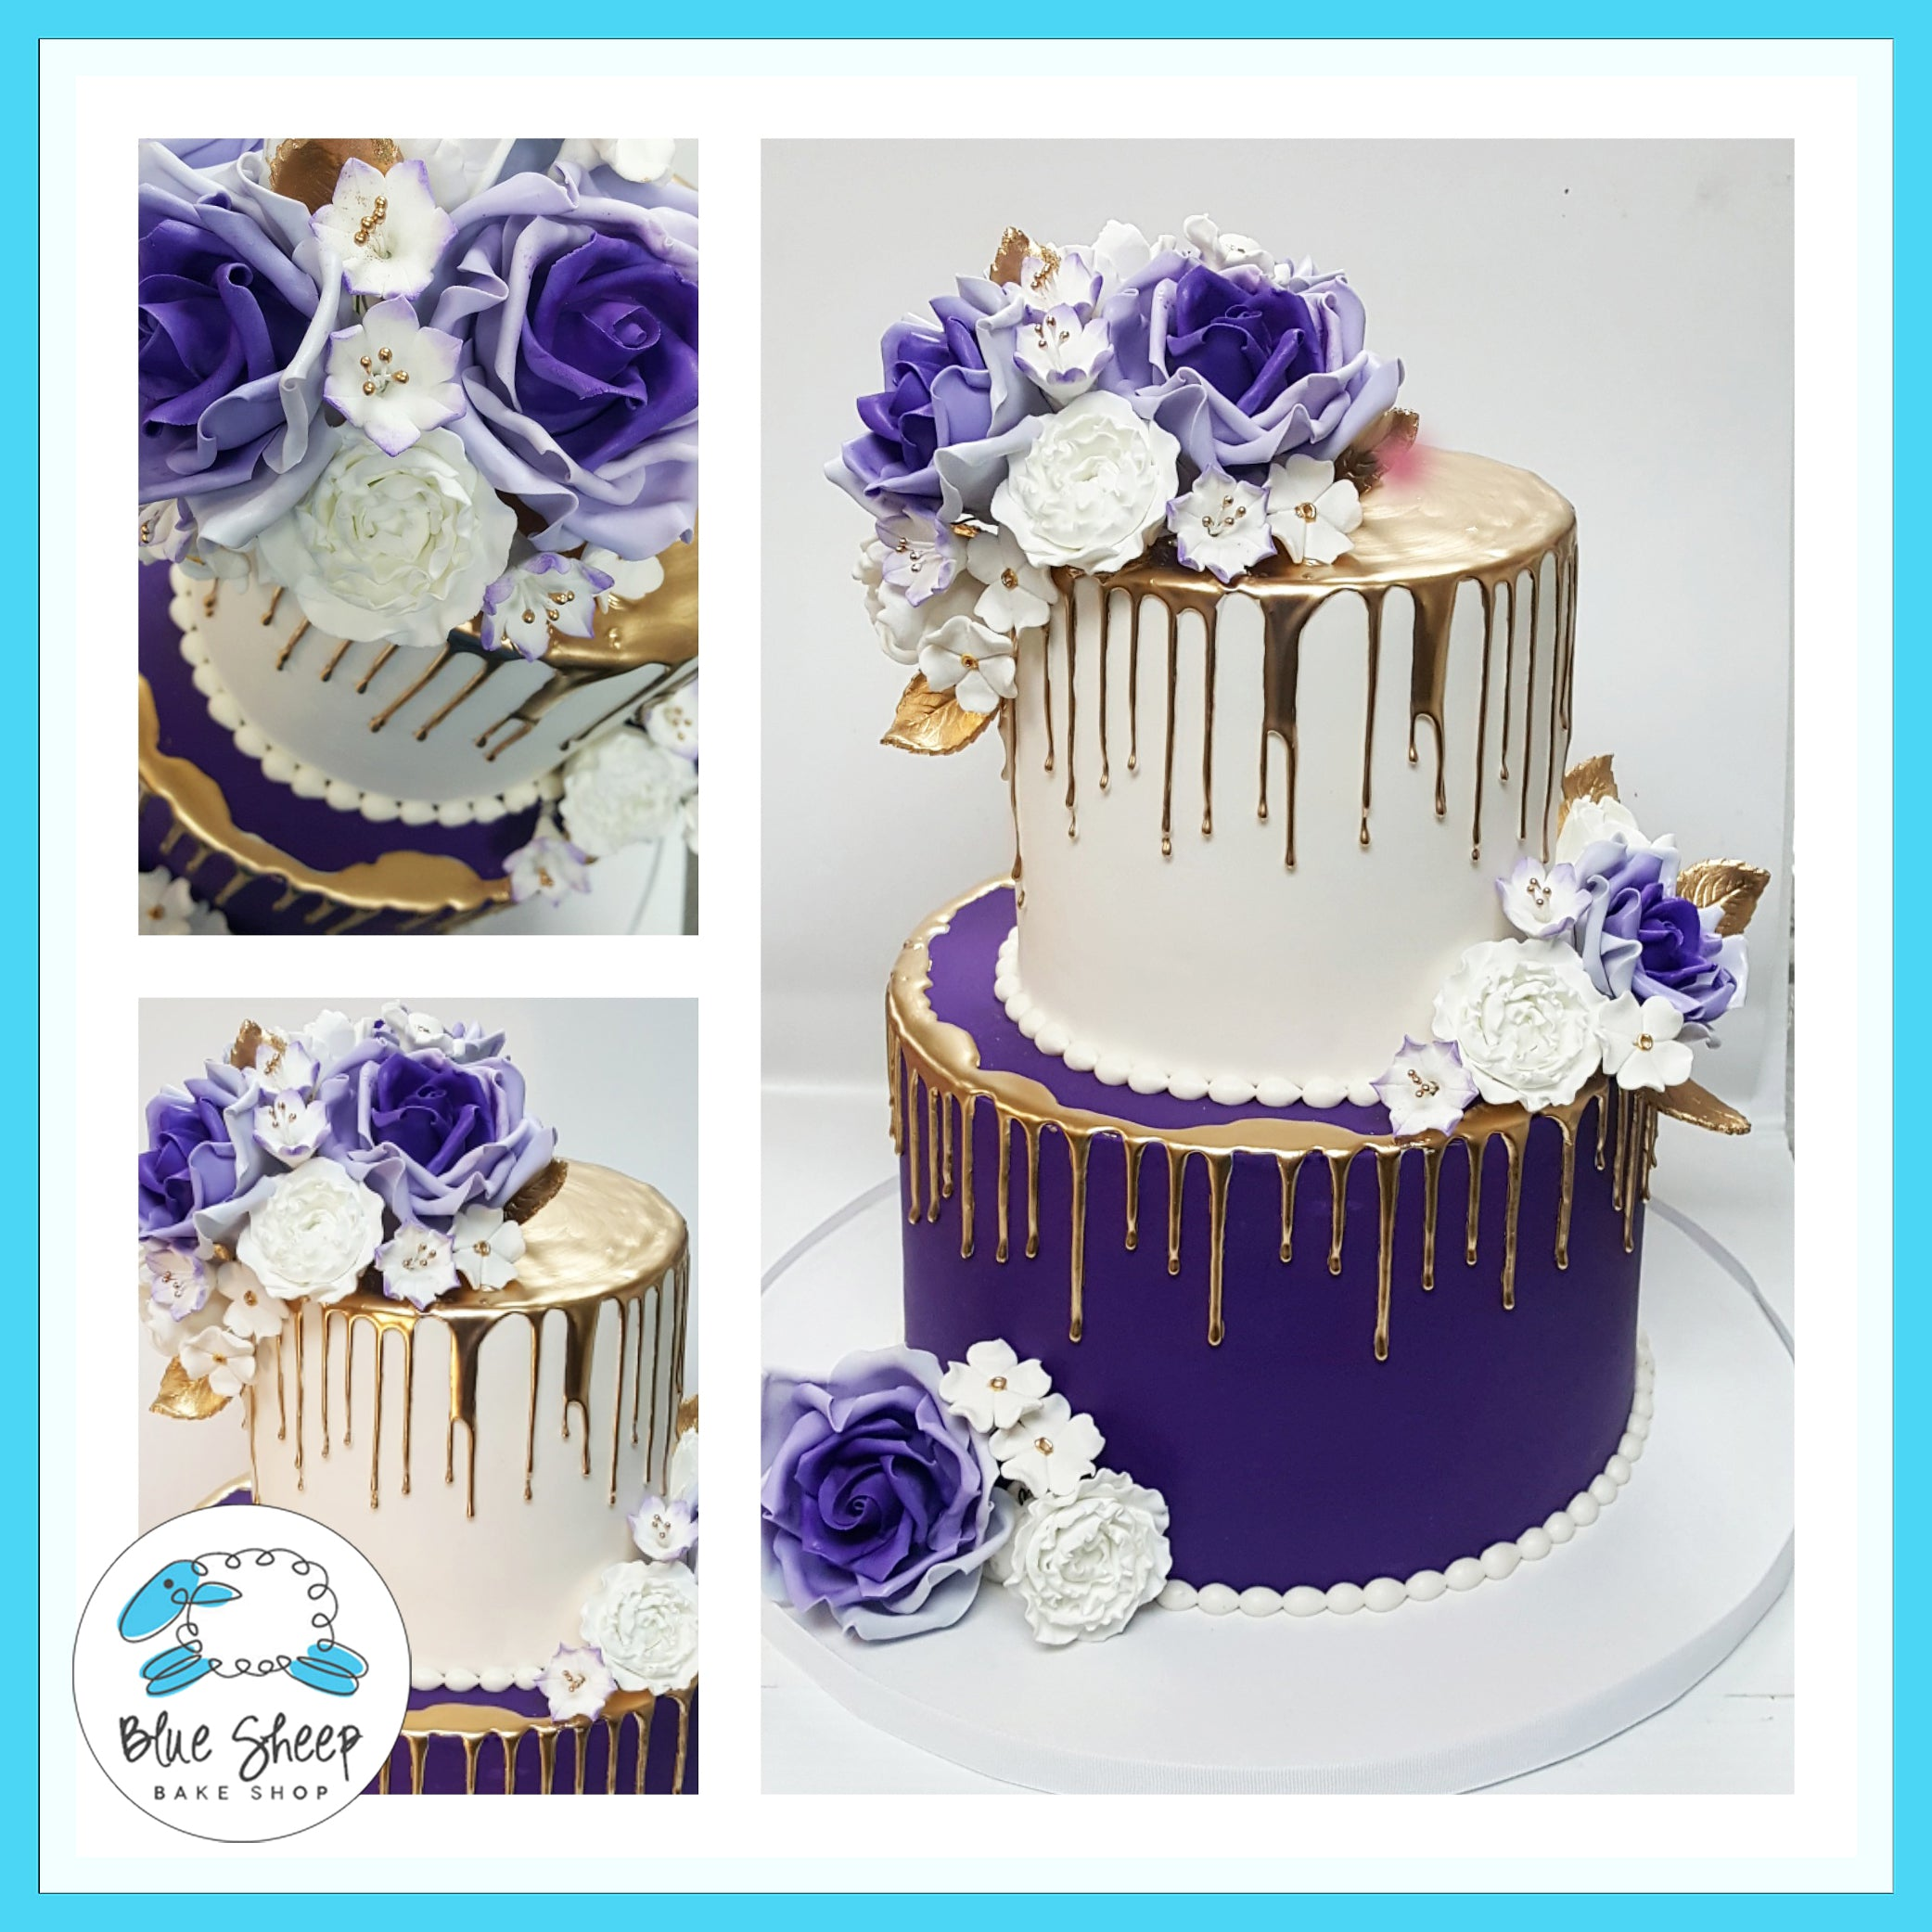 Royal Purple and Gold Drip Cake With Sugar Flowers | Blue Sheep Bake ...